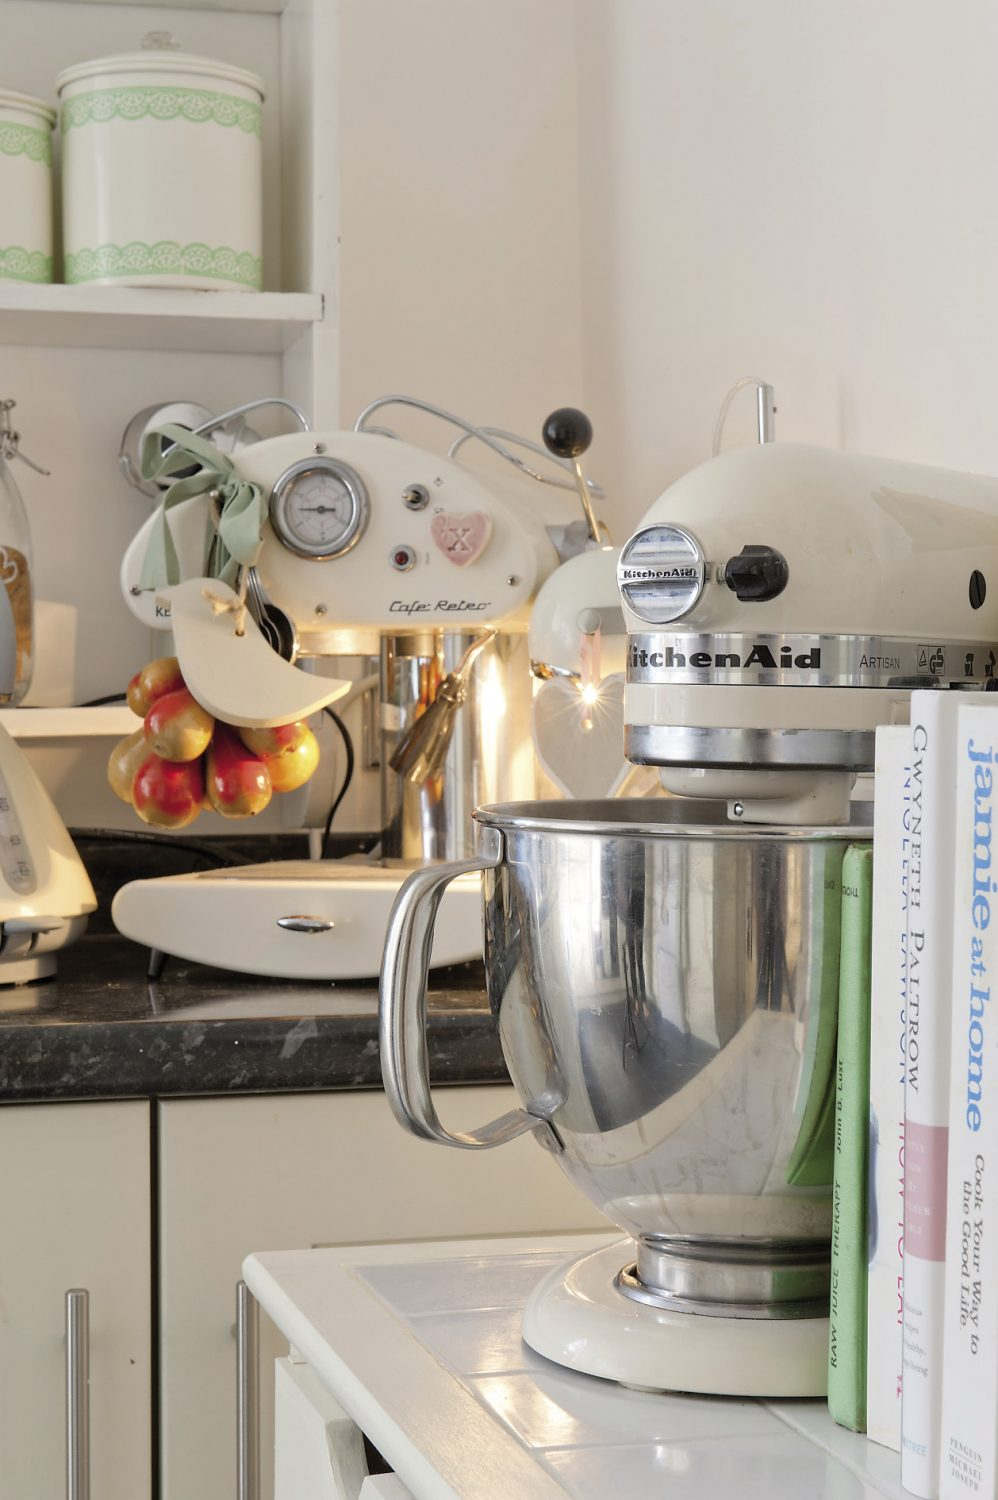 The kitchen gadgets are almost all original classics of industrial design such as Anastasia's treasured KitchenAid food mixer